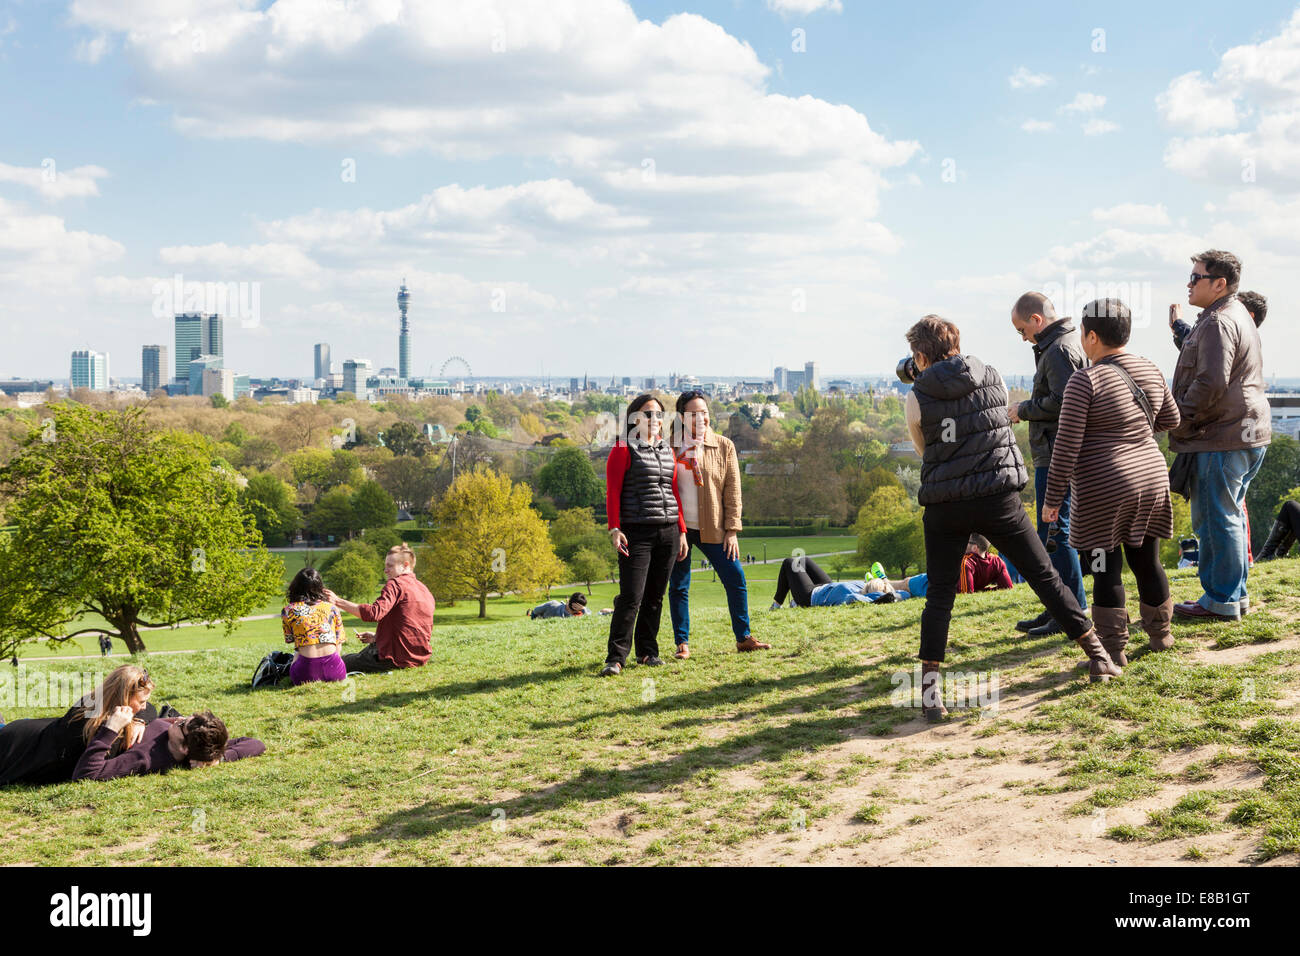 Person photographing friends on Primrose Hill with the London city skyline in the distance, England, UK - Stock Image